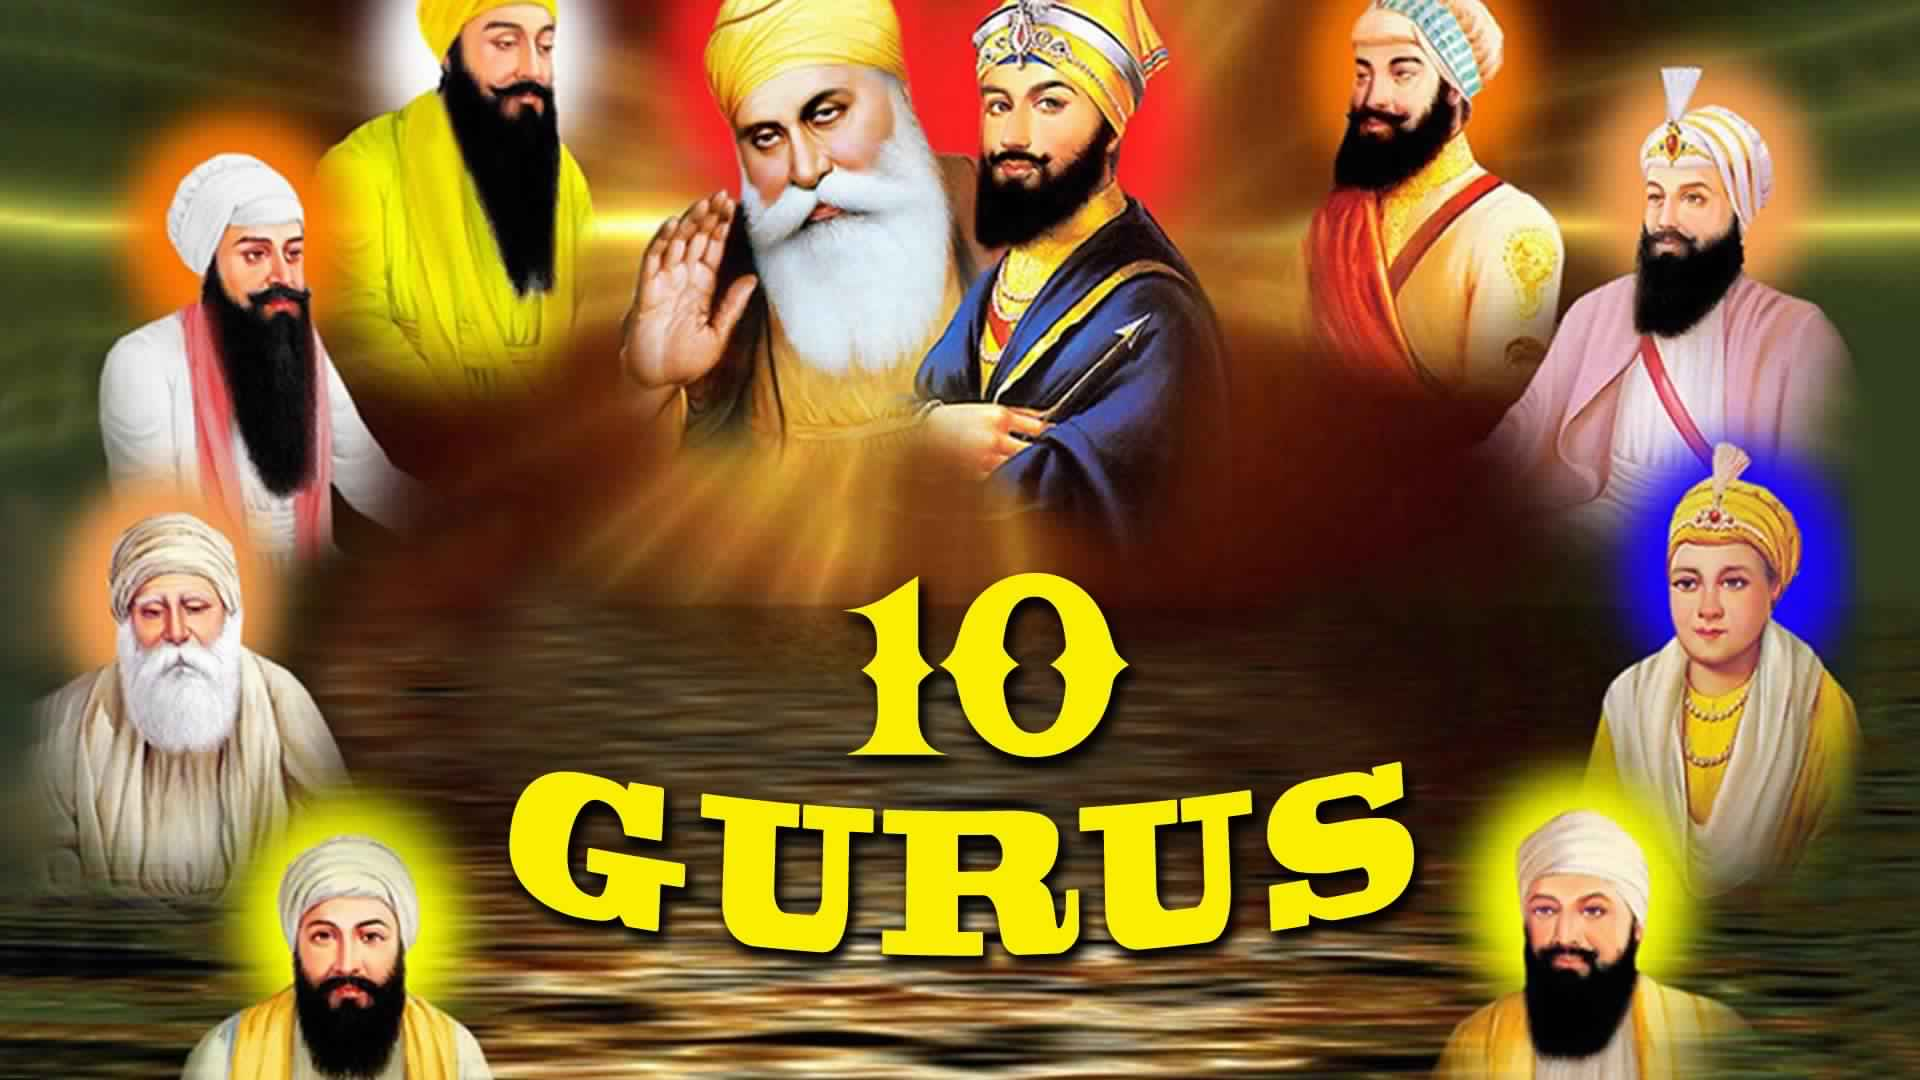 Sikh Wallpapers Hd For Iphone 5 10 Gurus Of Sikhism Wallpapers Hd 10 Sikh Gurus